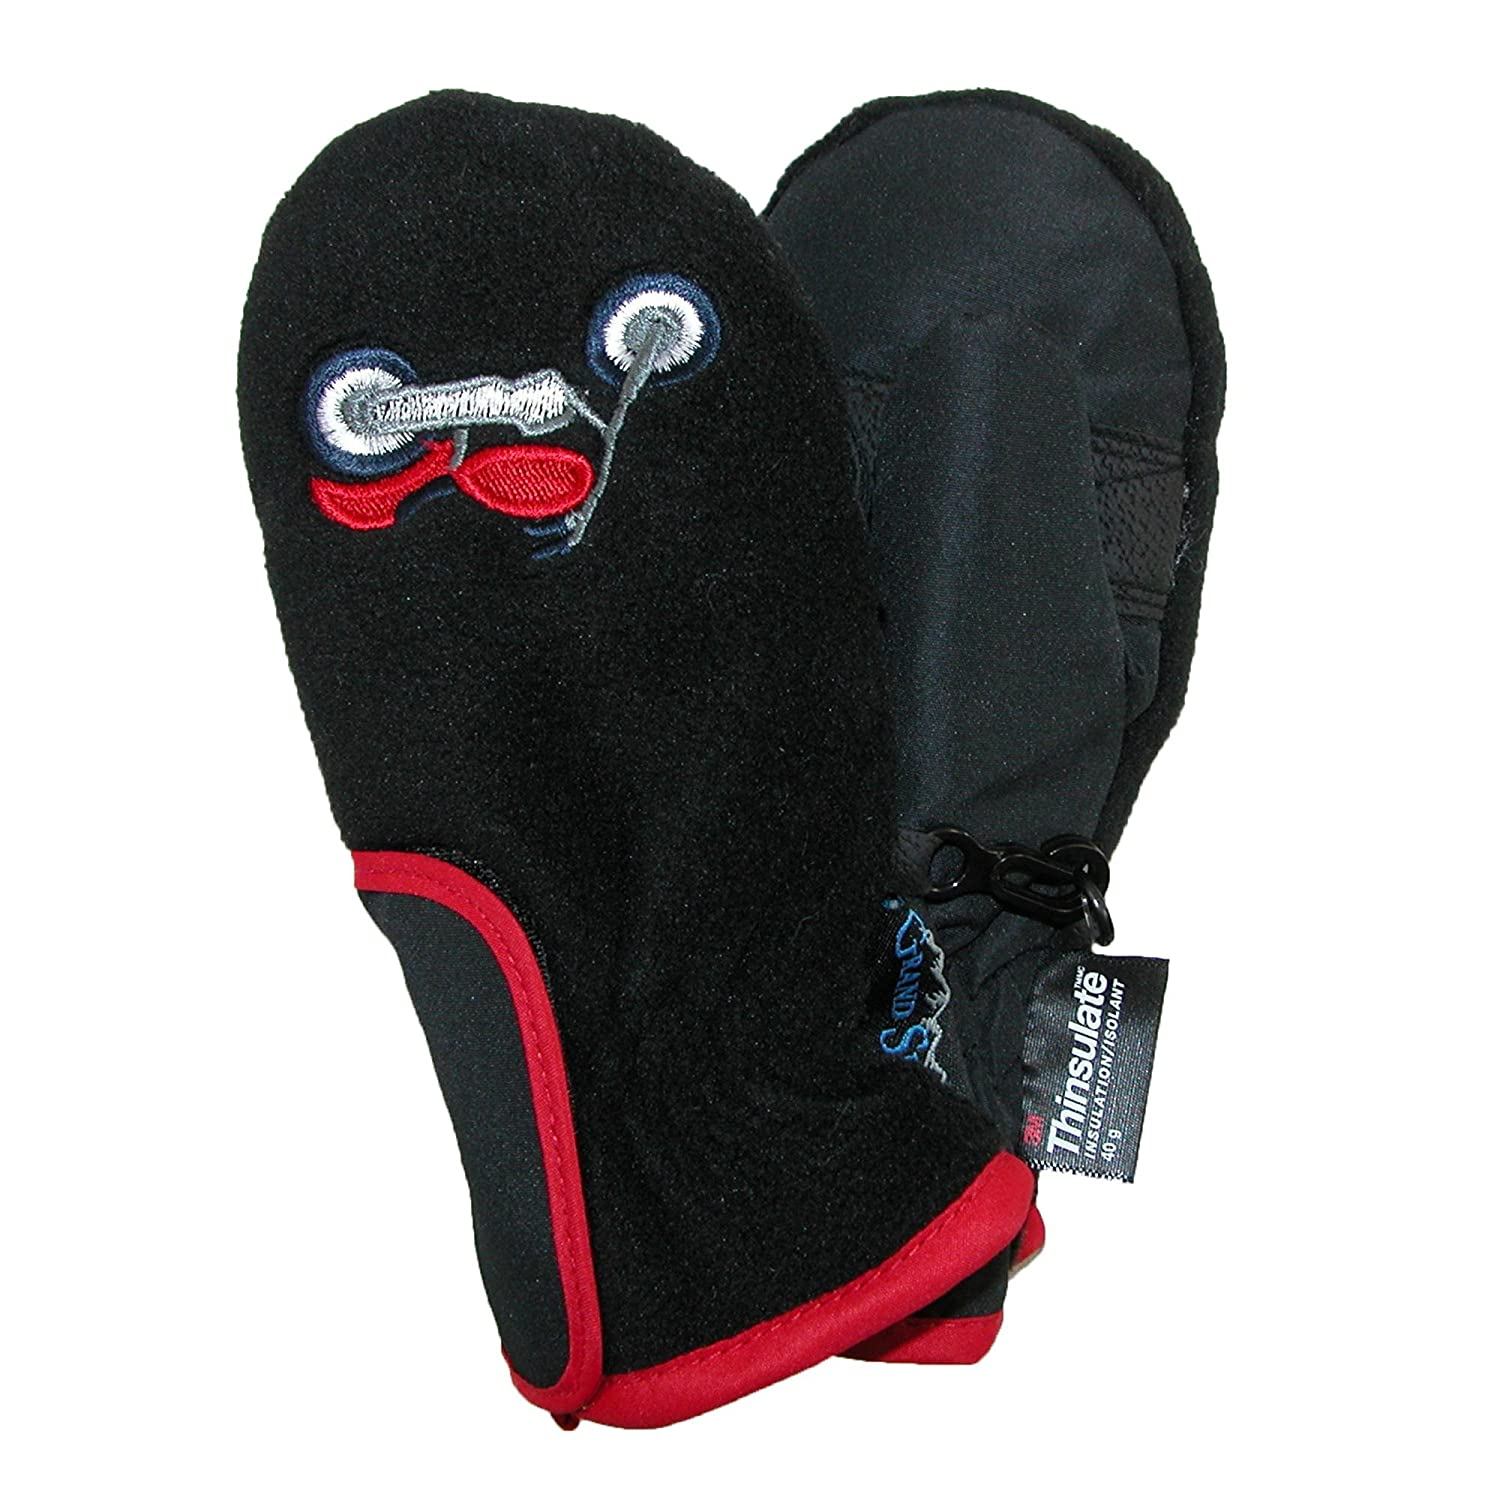 Grand Sierra Toddlers 2-4 Embroidered Waterproof Mittens, Black with Motorcycles